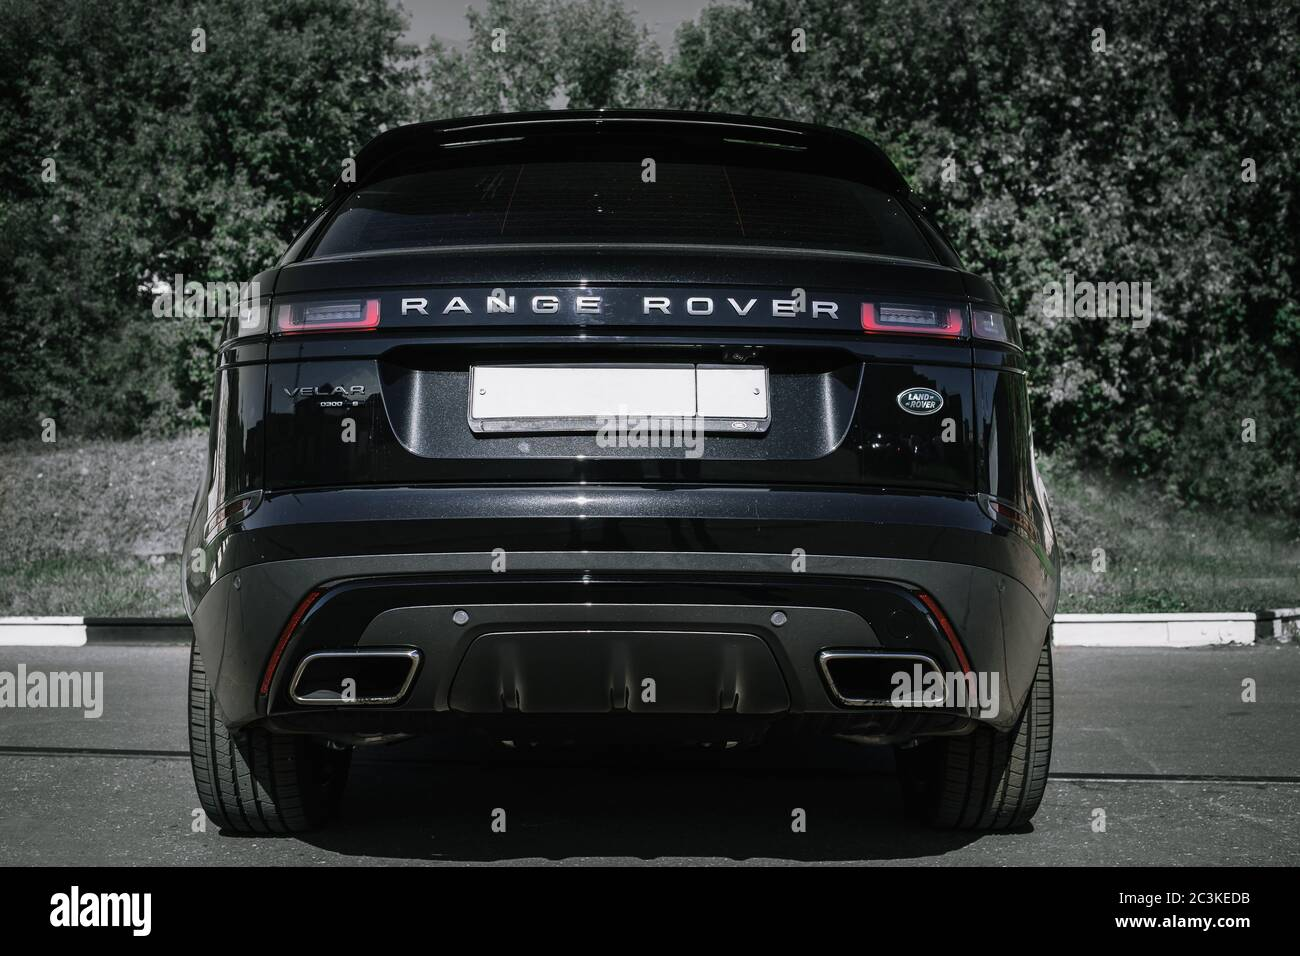 Moscow Autumn 2018 The Land Rover Range Rover Velar In Black Color Compact Luxury Crossover Suv In The Industrial Zone Stock Photo Alamy